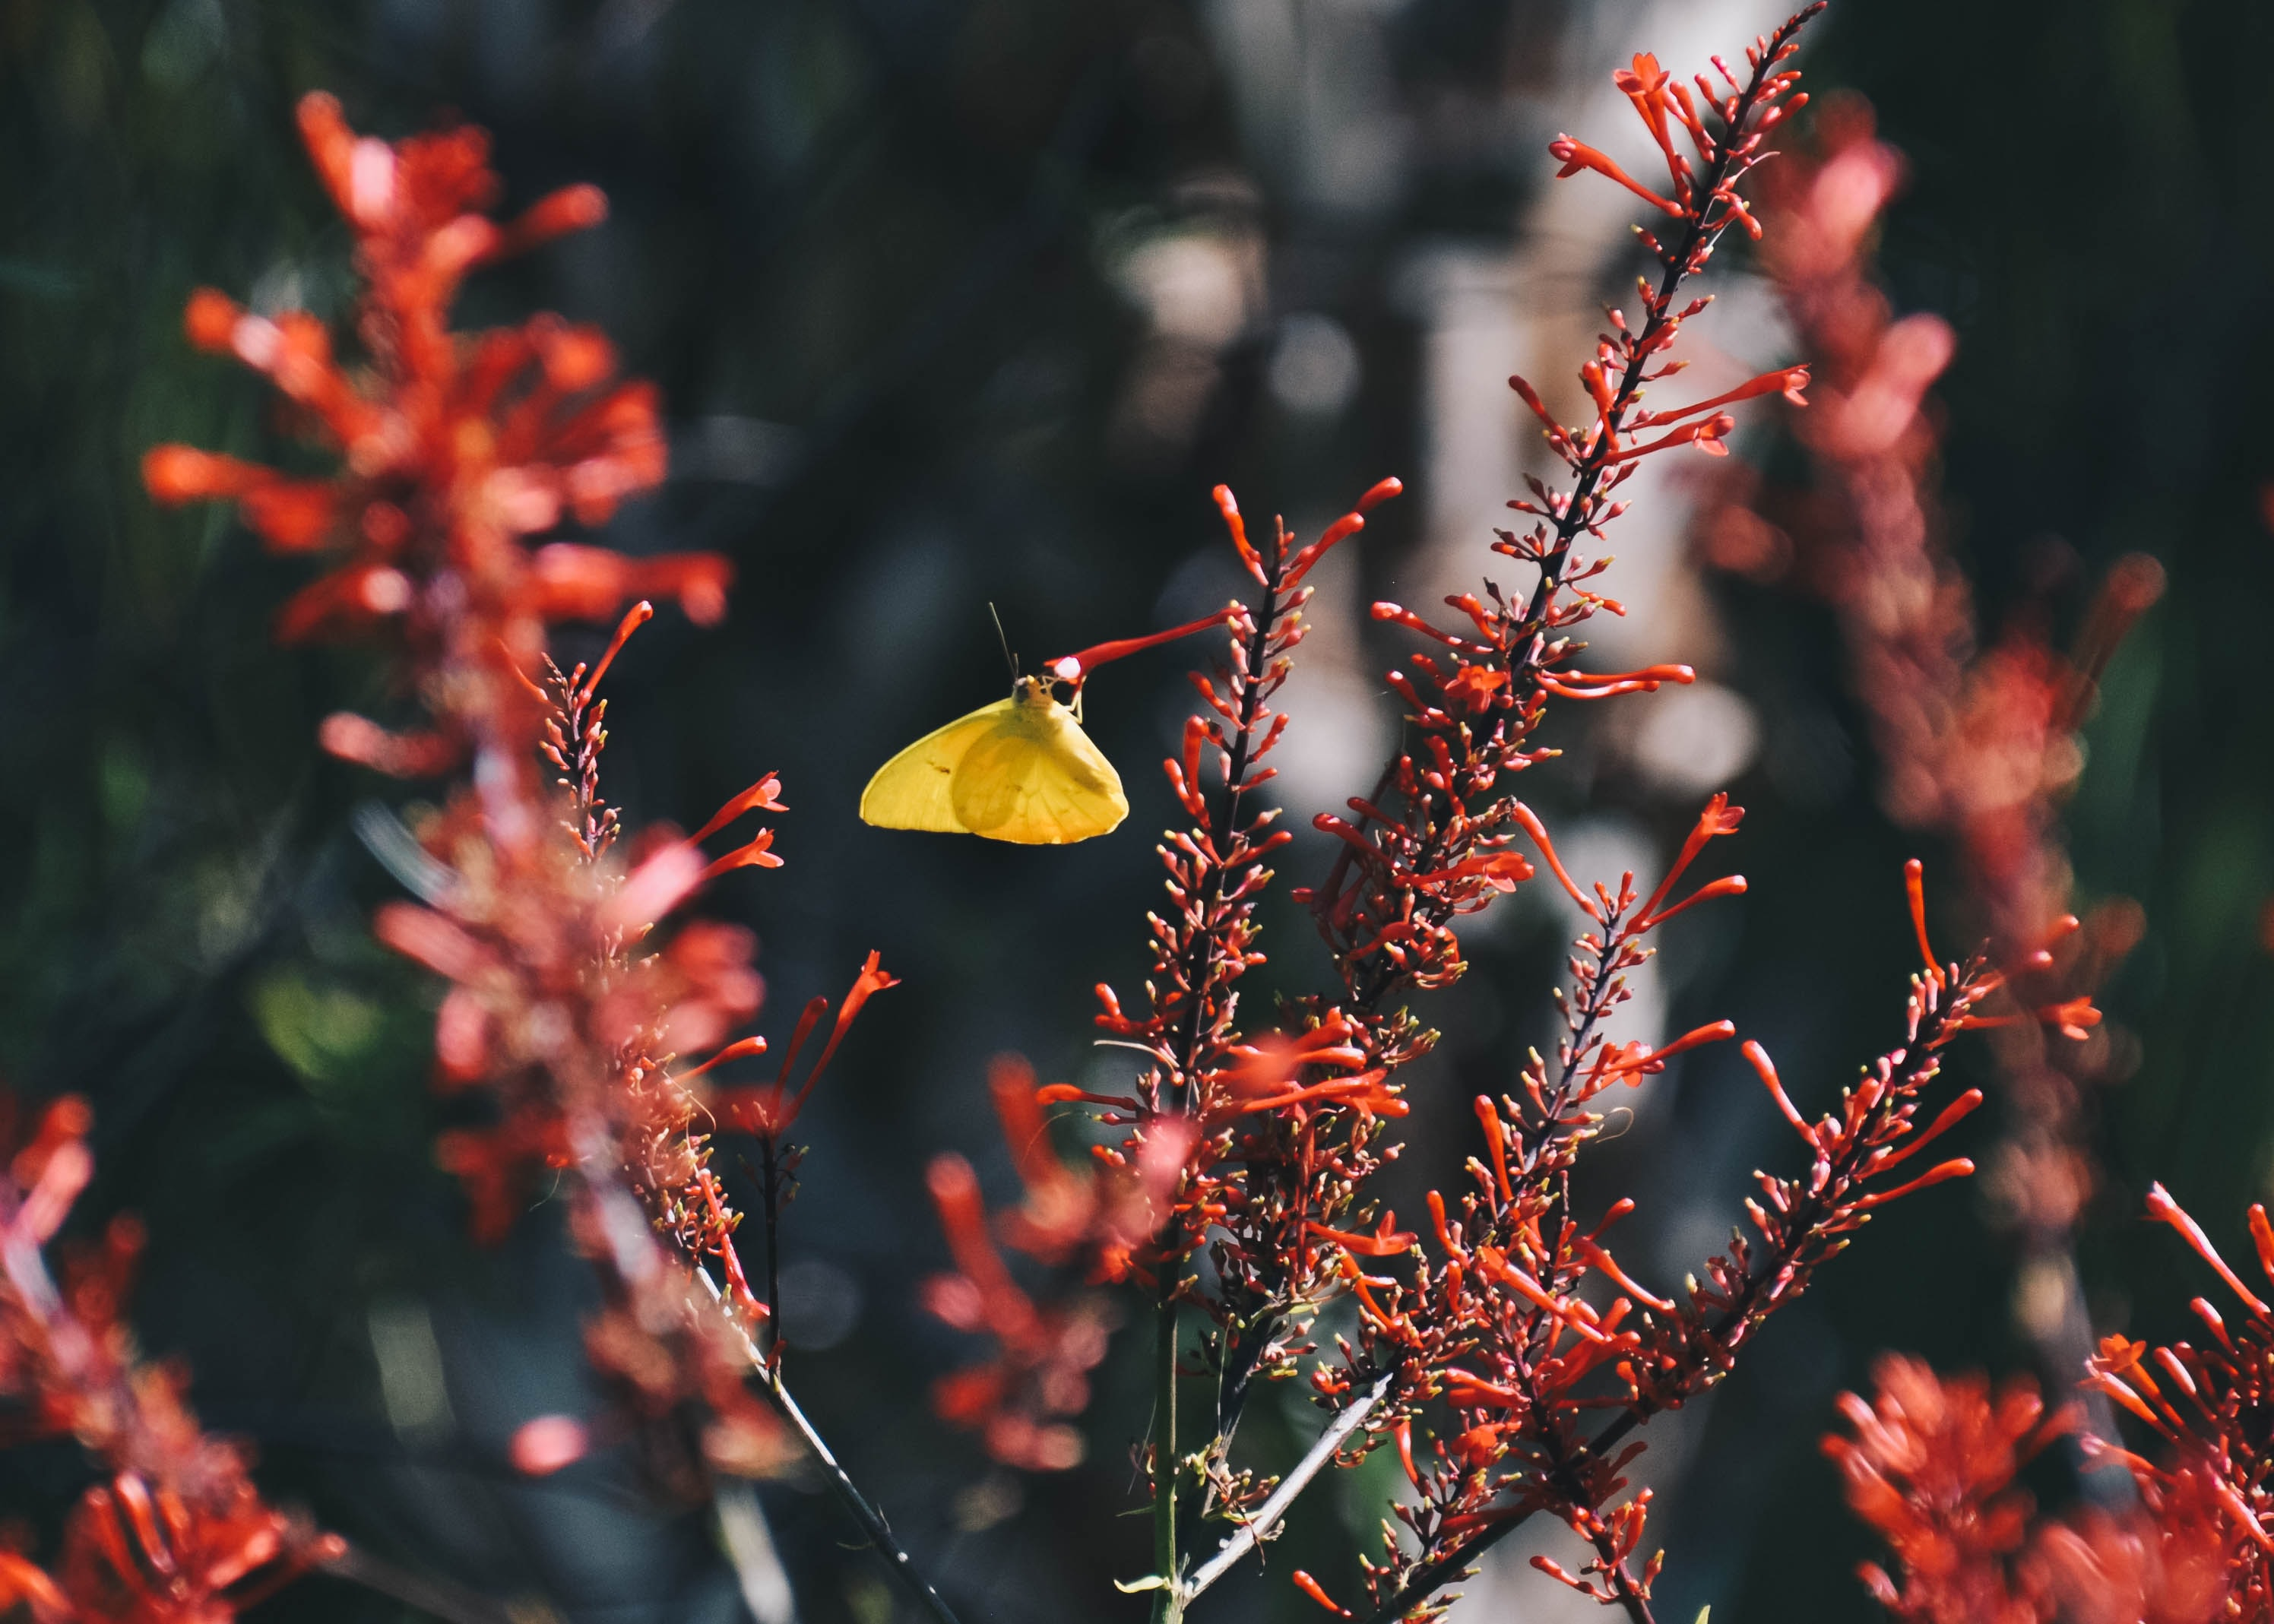 selective focus photography of yellow butterfly perched on red flower bud